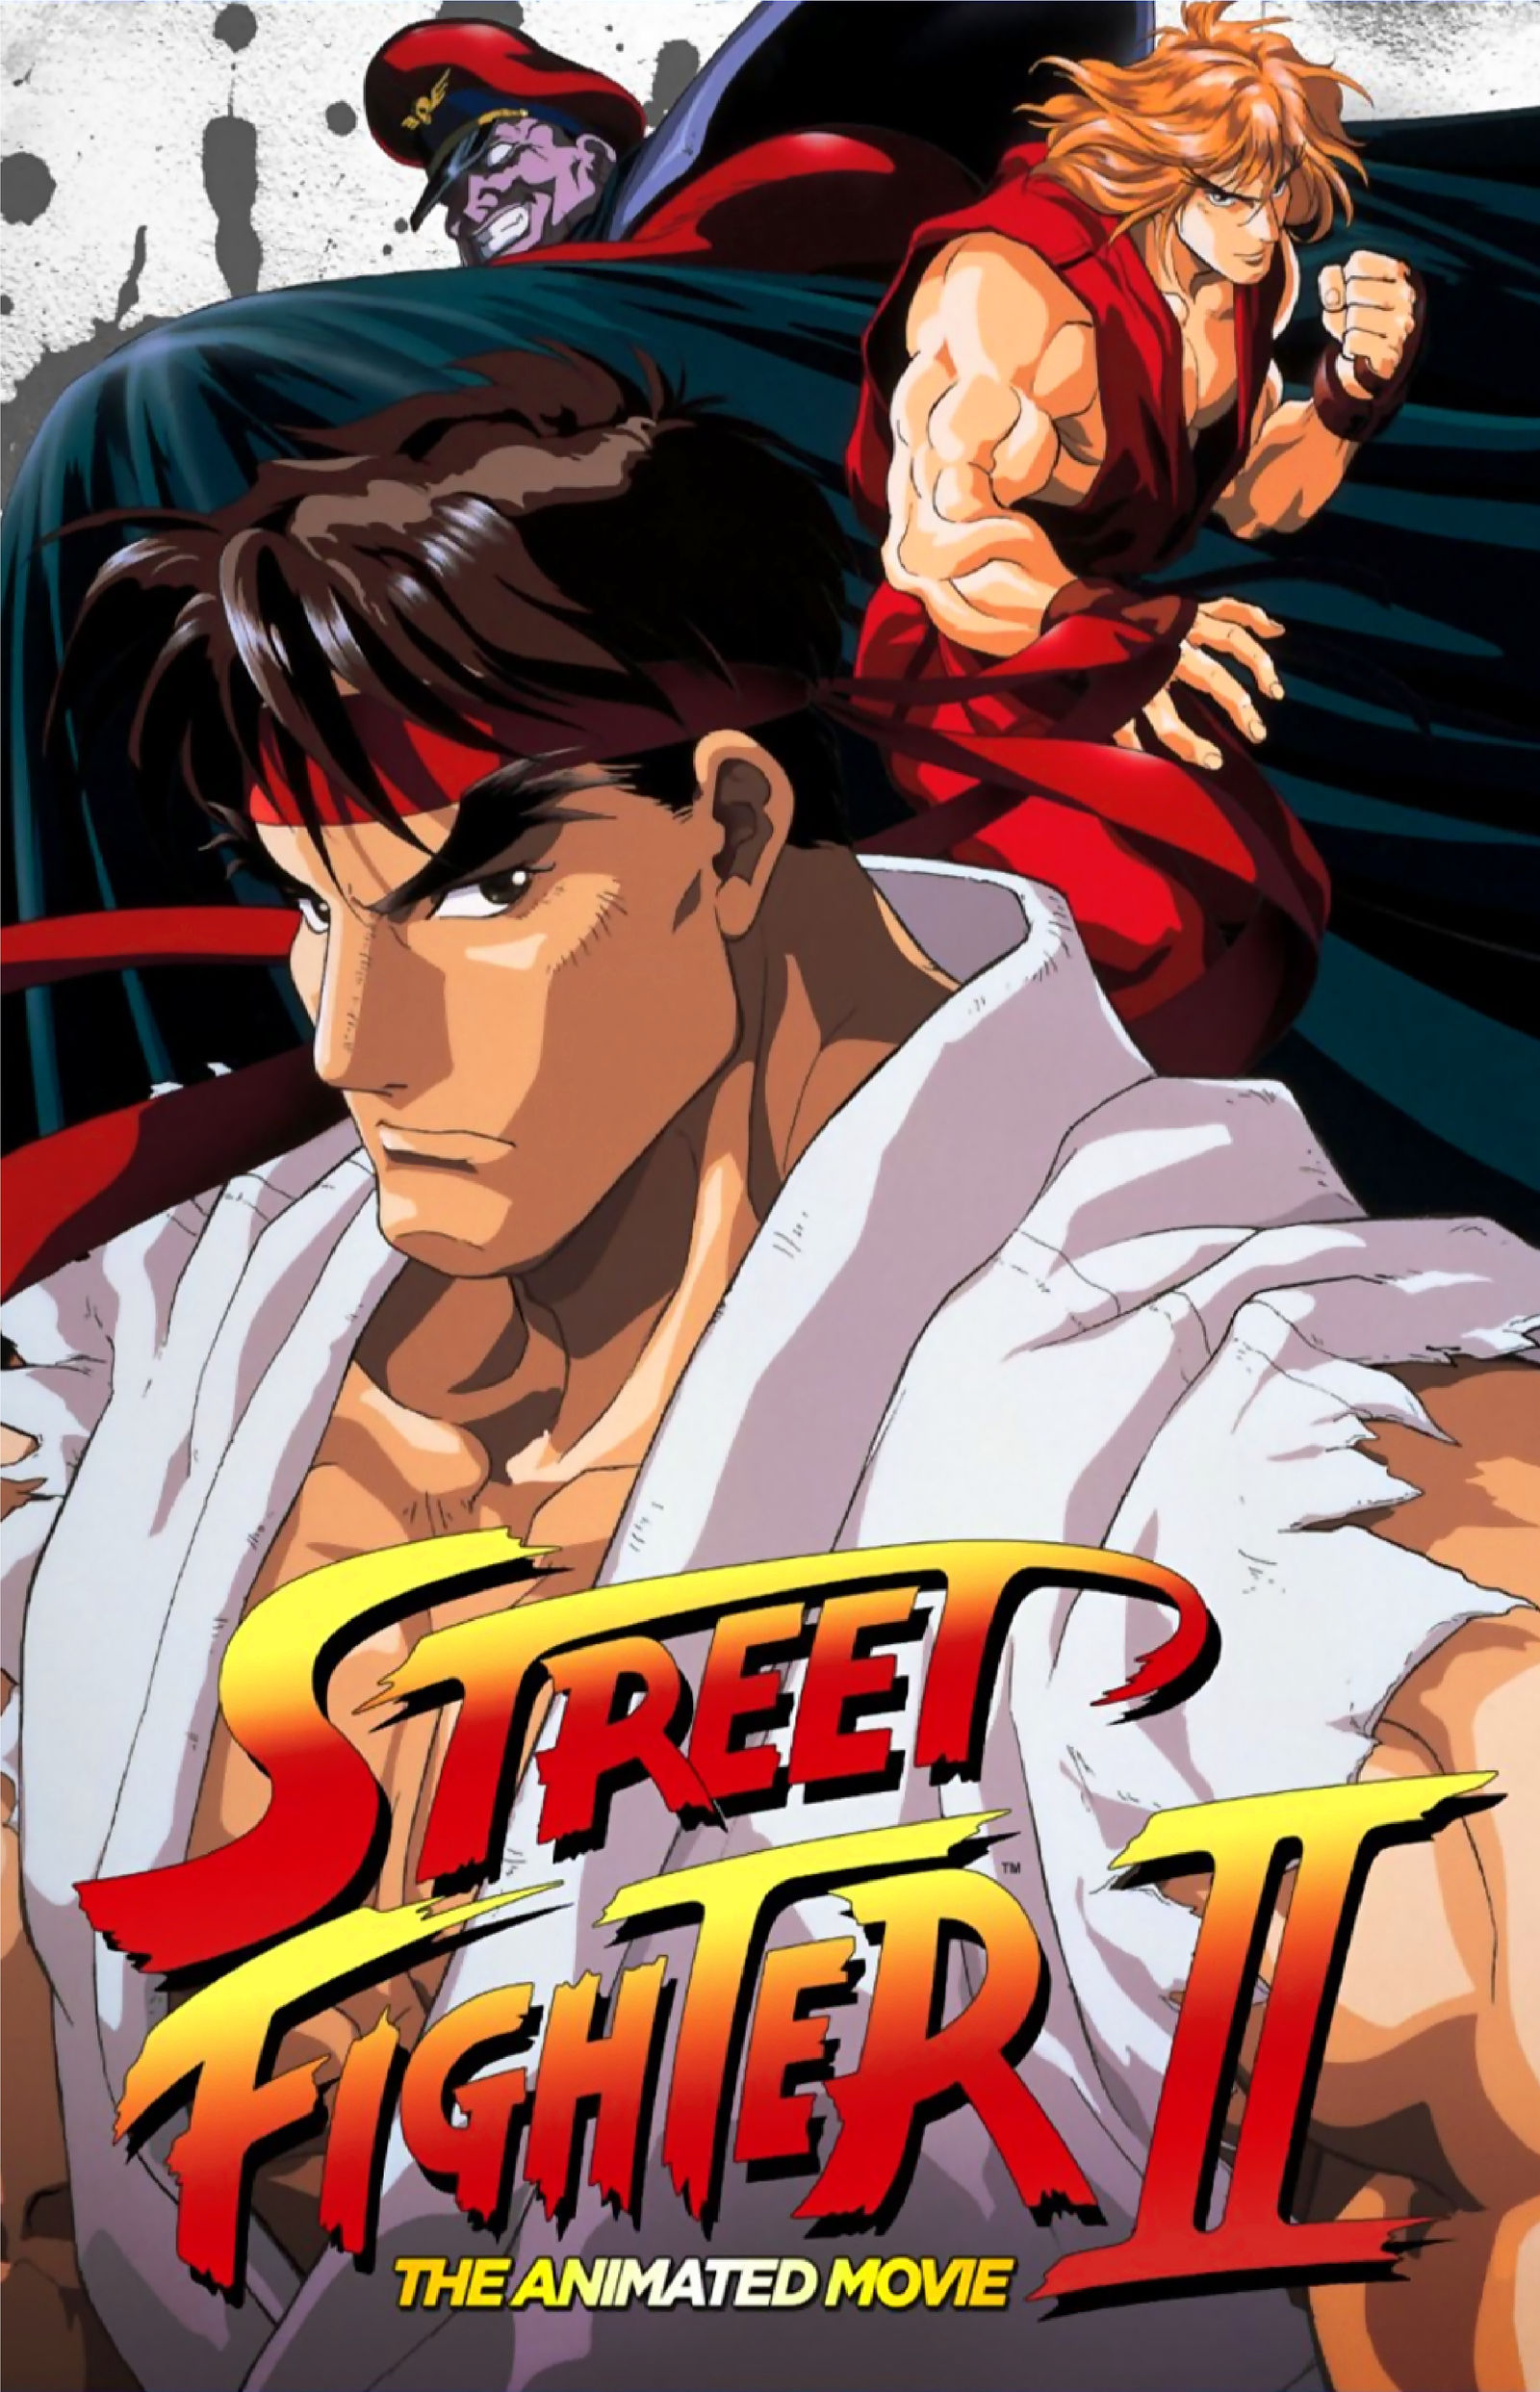 Street Fighter Ii The Animated Movie Poster By Leivbjerga On